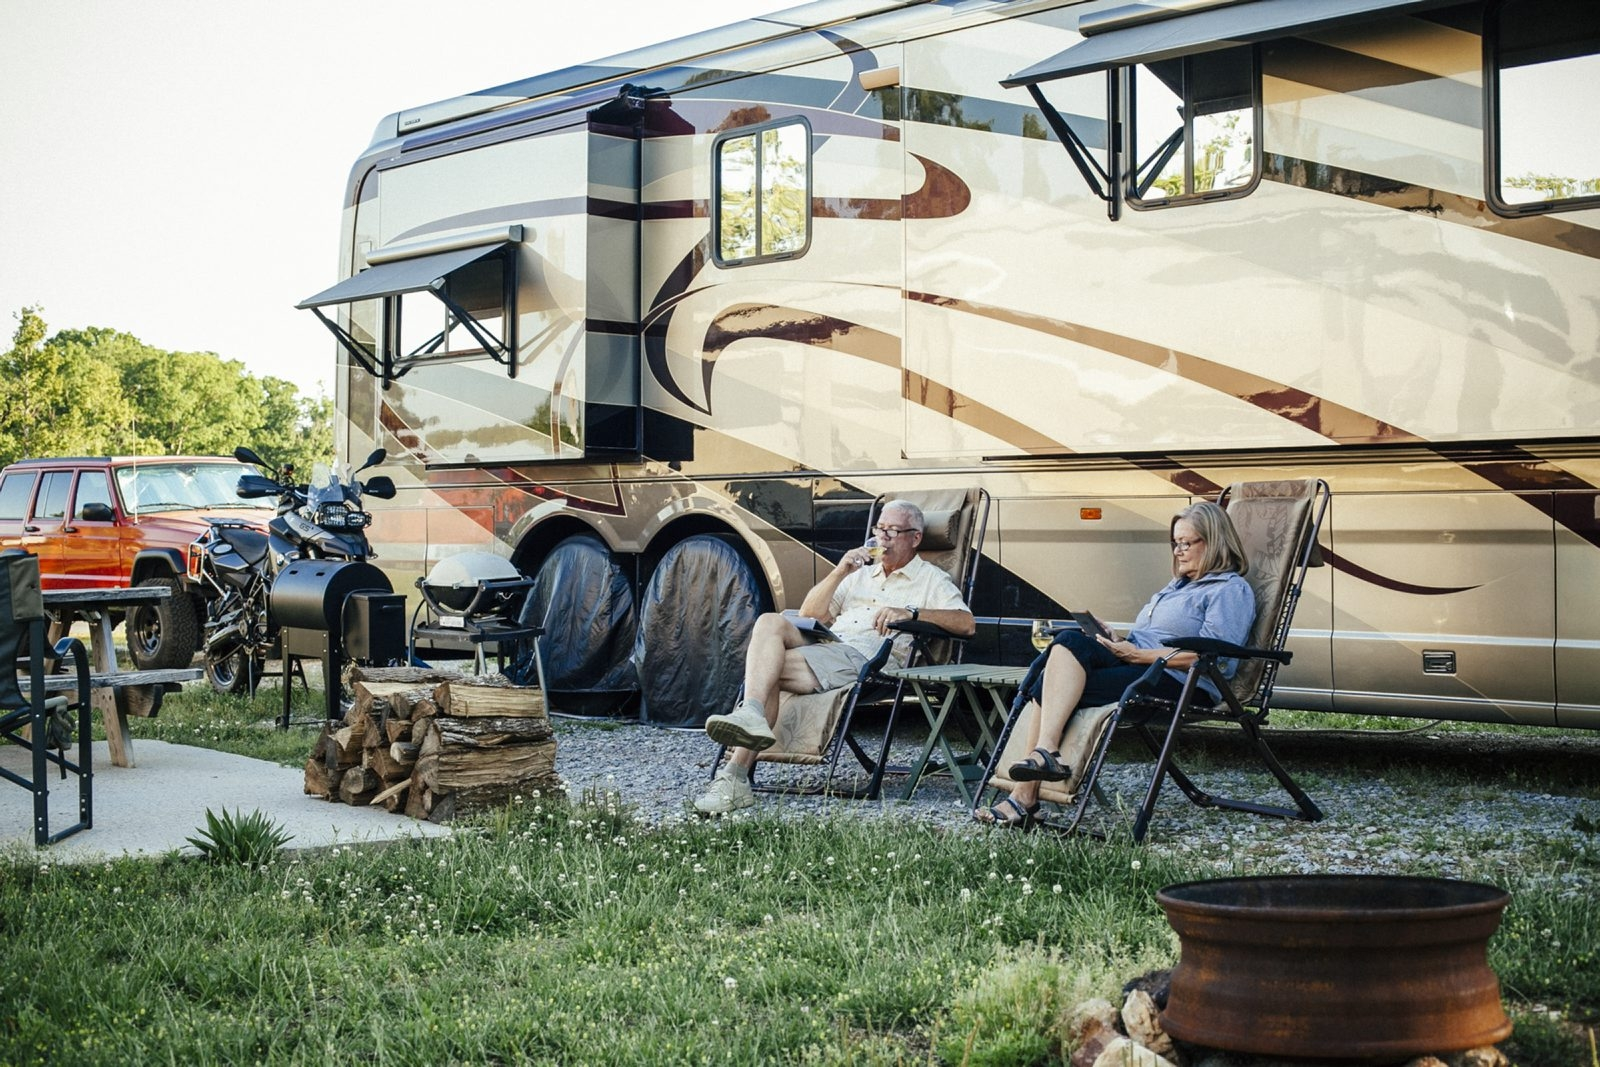 Jim and Jaylene Myers are shown with their 45-foot rolling home at Lazy Acres RV Park in Lenoir City, Tenn. The Myerses are members of a high-octane tribe of retirees who are transforming their golden years into a golden age of adventure on the open road.